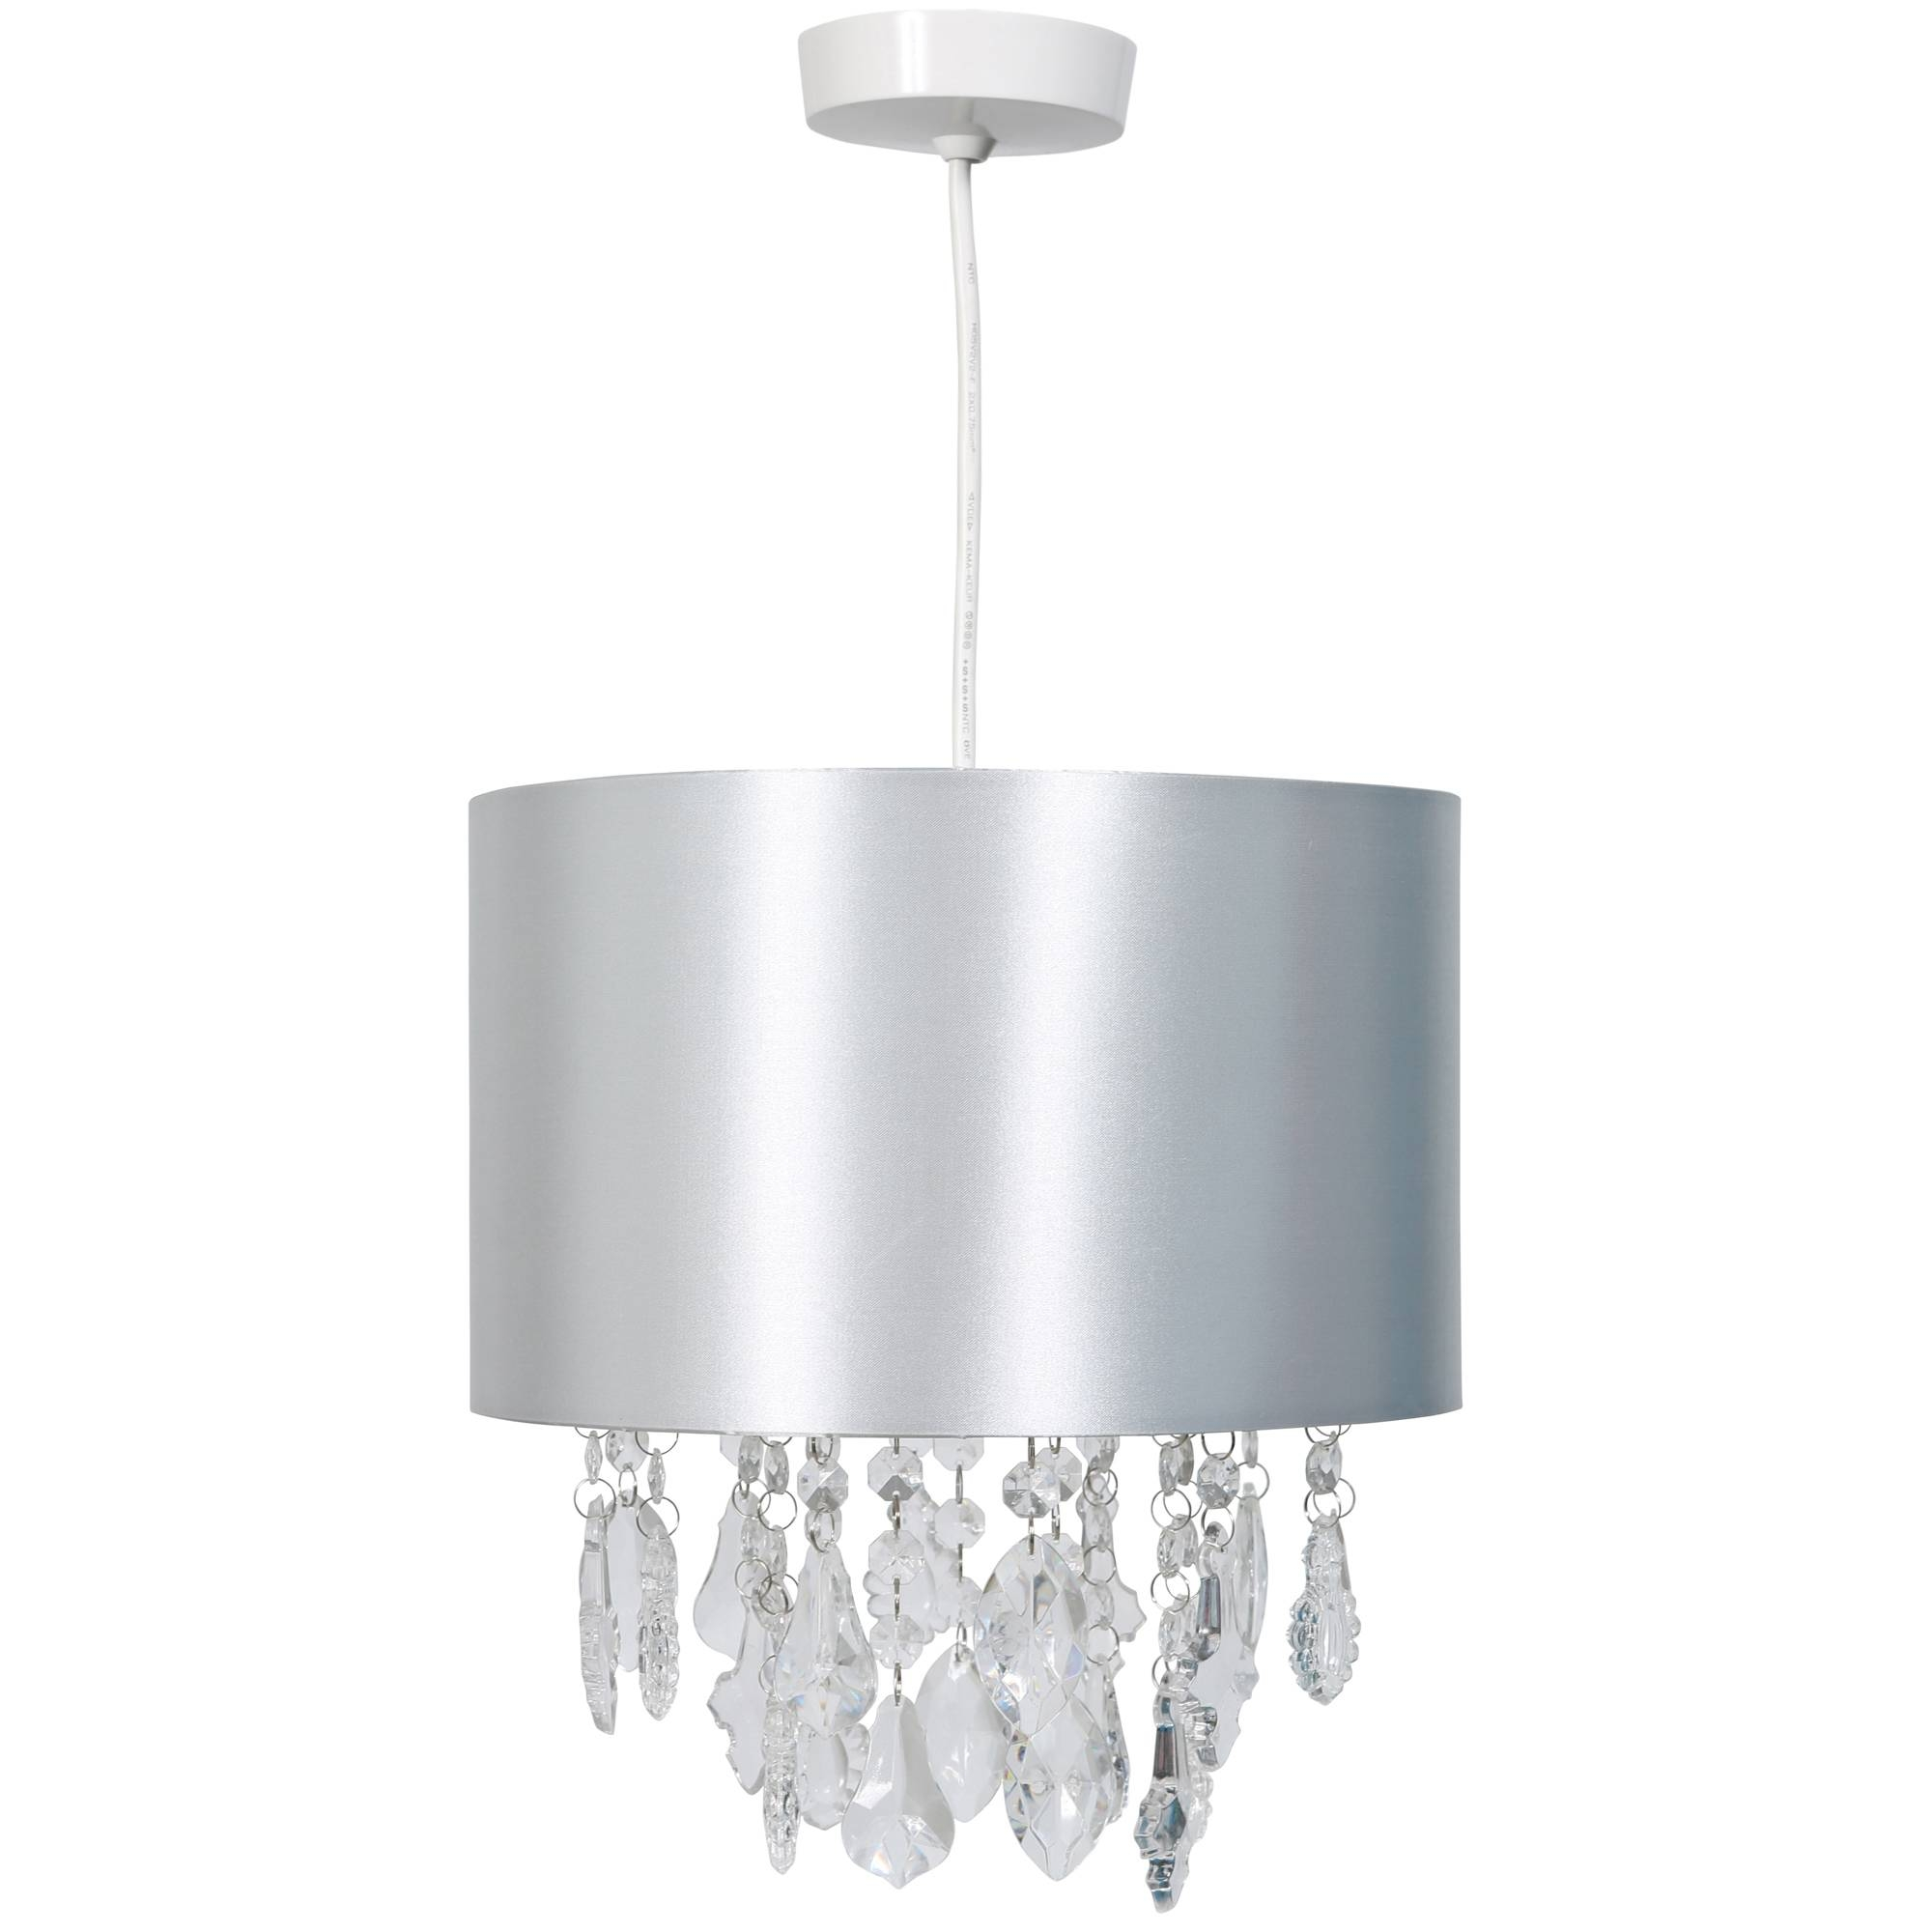 Kliving Sheldon Silver Acrylic Beads Non Electric Pendant Ceiling pertaining to Non Electric Pendant Ceiling Lights (Image 12 of 15)